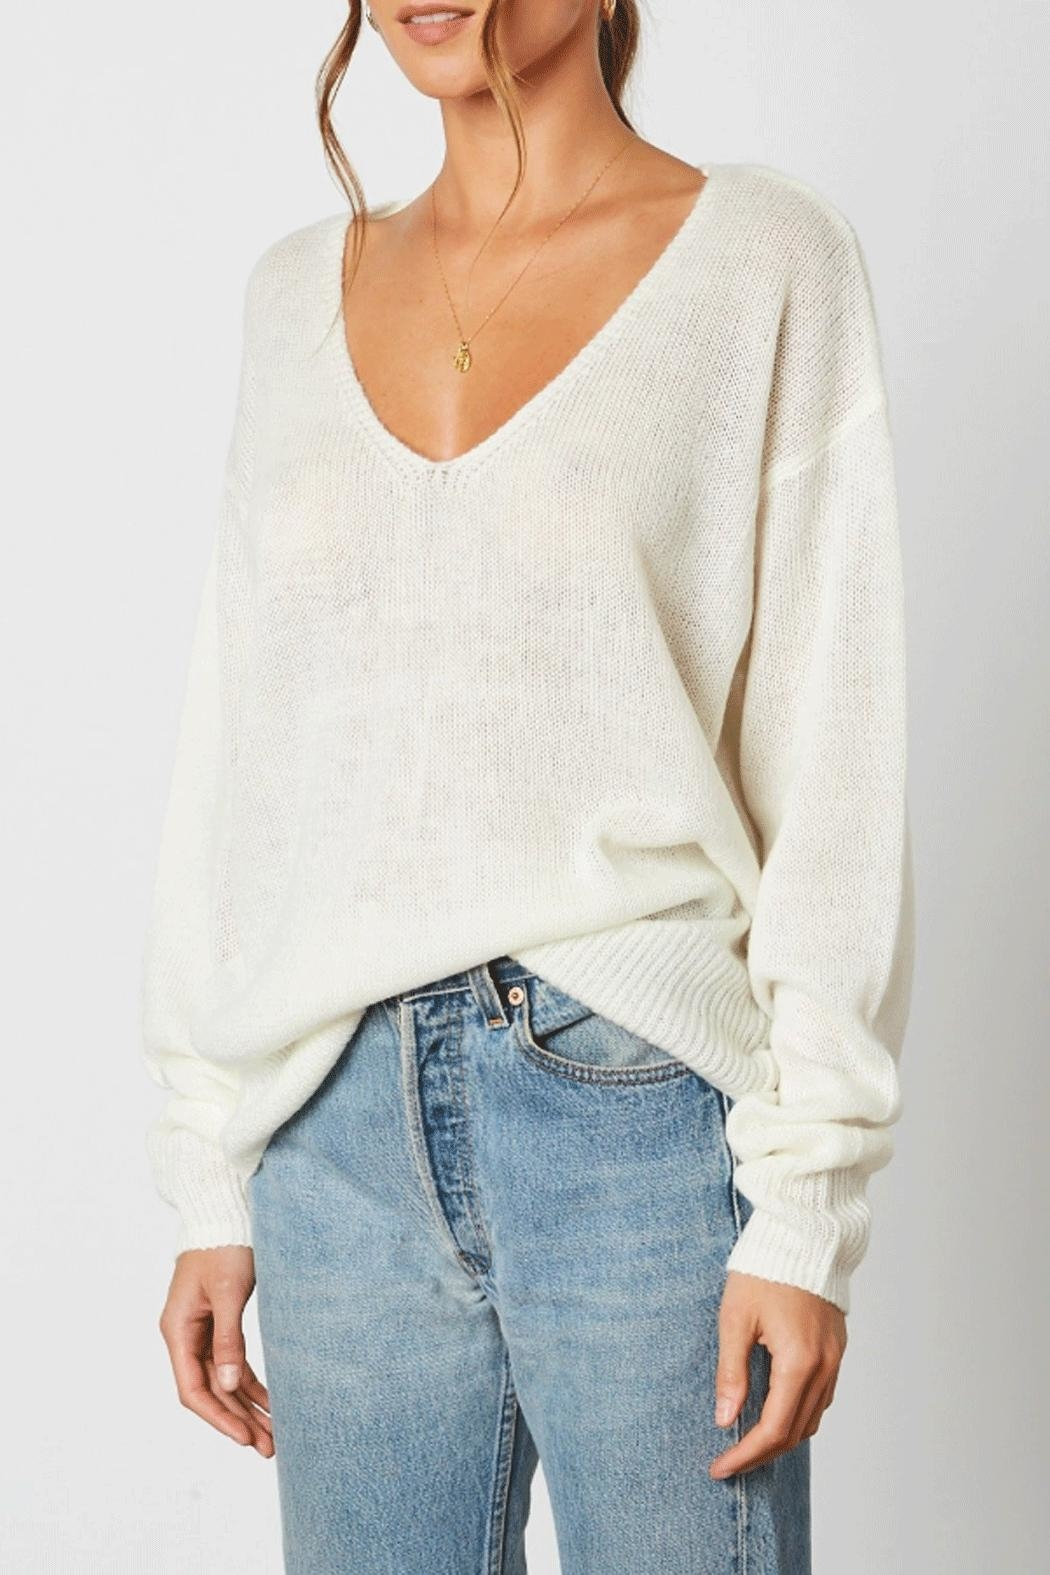 Cotton Candy Deep V-Neck Sweater - Front Full Image